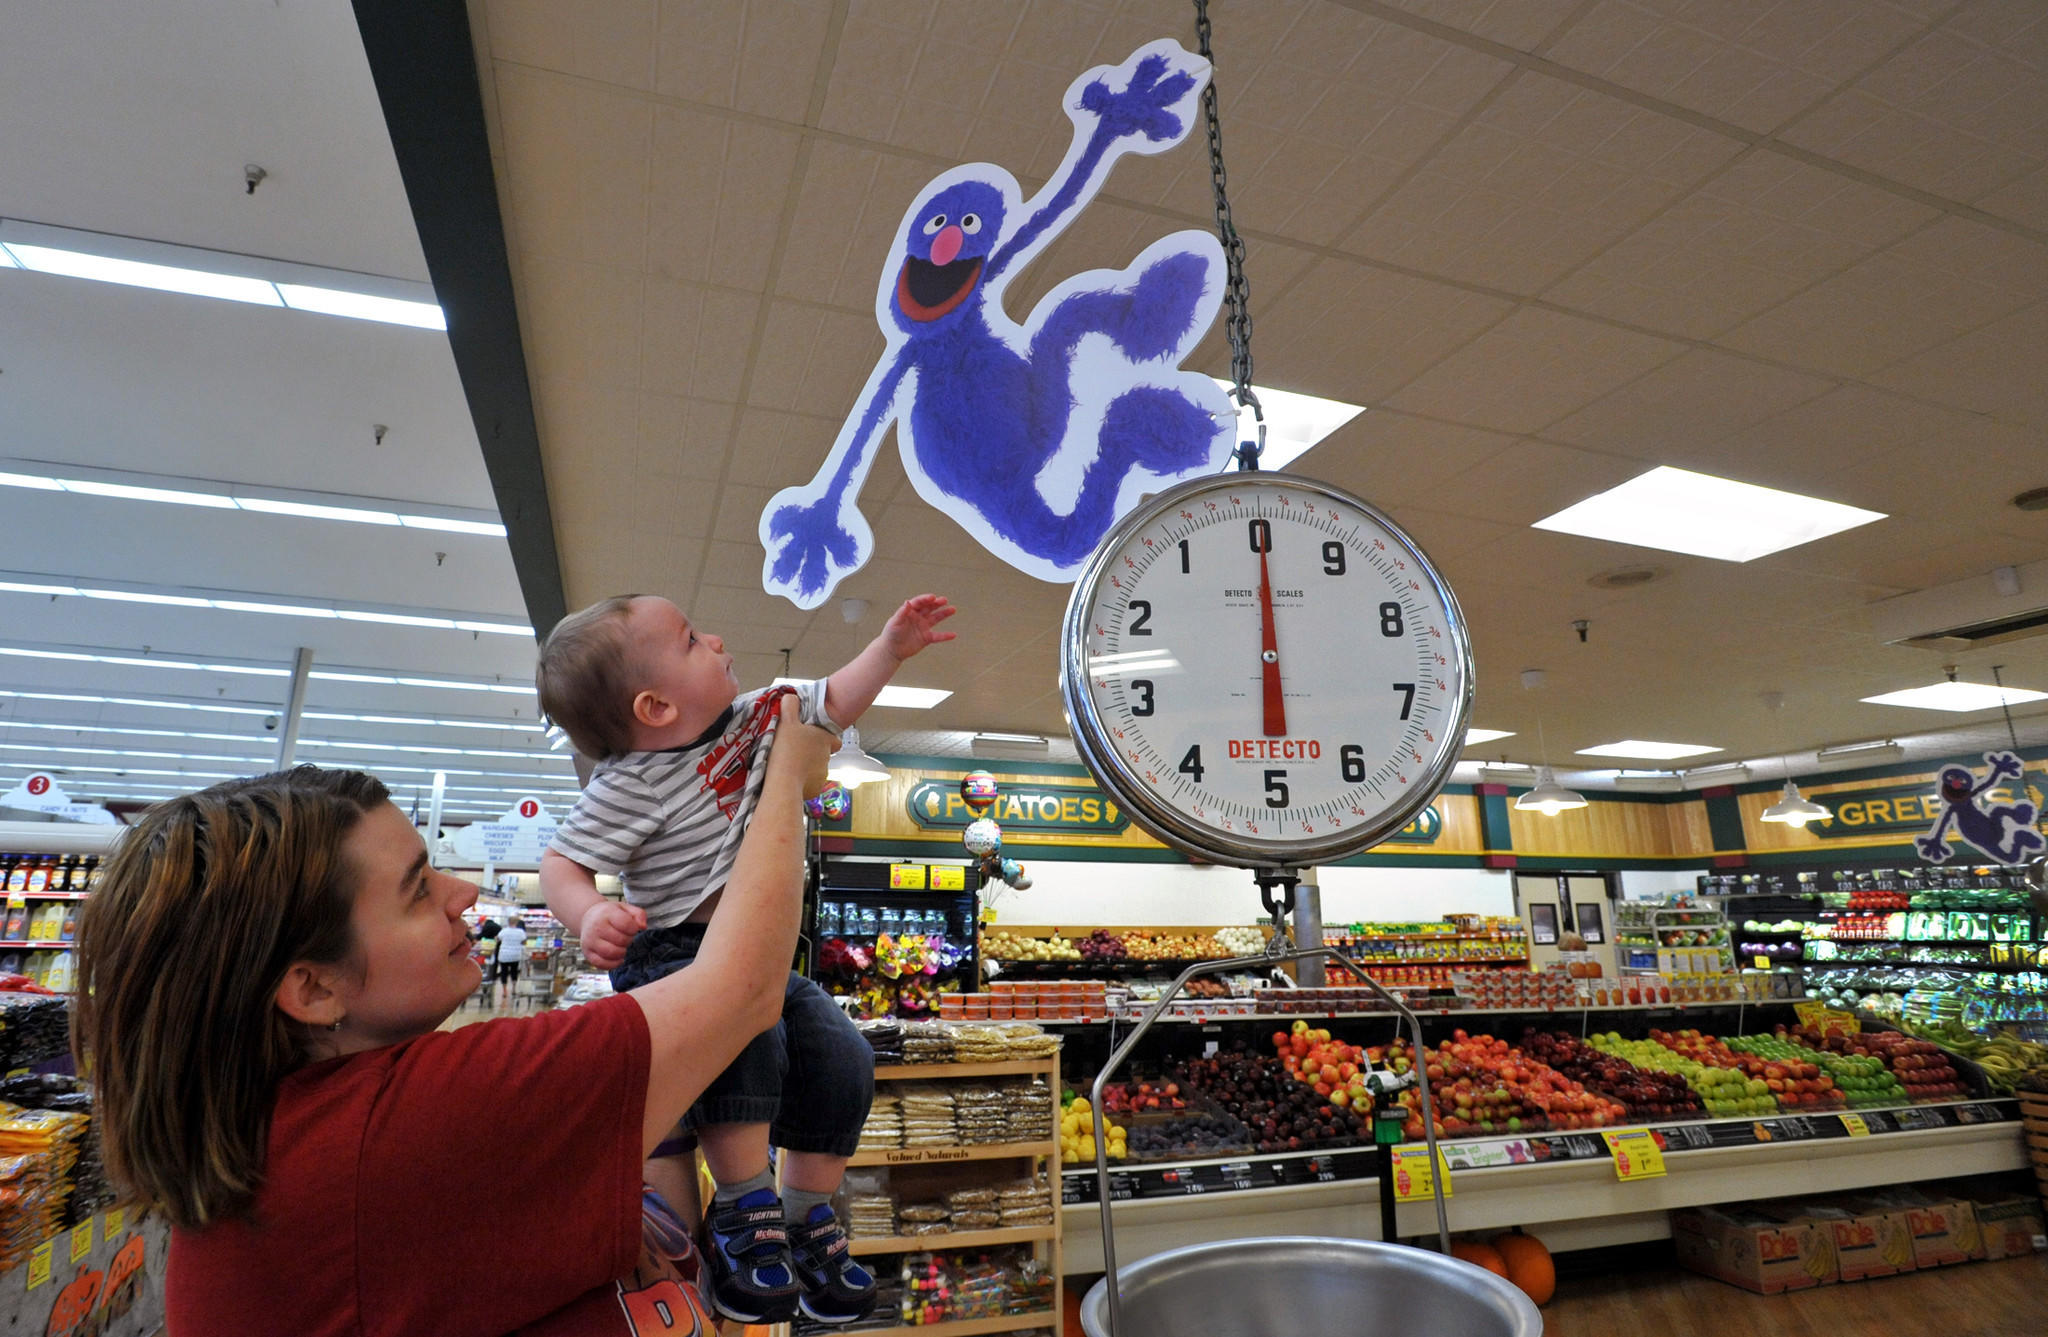 "Dundalk, MD - 9/29/14 - Laura Shelton of Dundalk hoists her one-year old son, Kevin Shelton, Jr. closer to a Grover sign as they shopped at the Mars store on Wise Avenue. Mars is the first supermarket in Maryland to participate in the ""Eat Brighter"" campaign from the produce marketing association, which teamed up with the Sesame Street Workshop to encourage healthier eating among pre-schoolers. Amy Davis /Baltimore Sun - #6880"